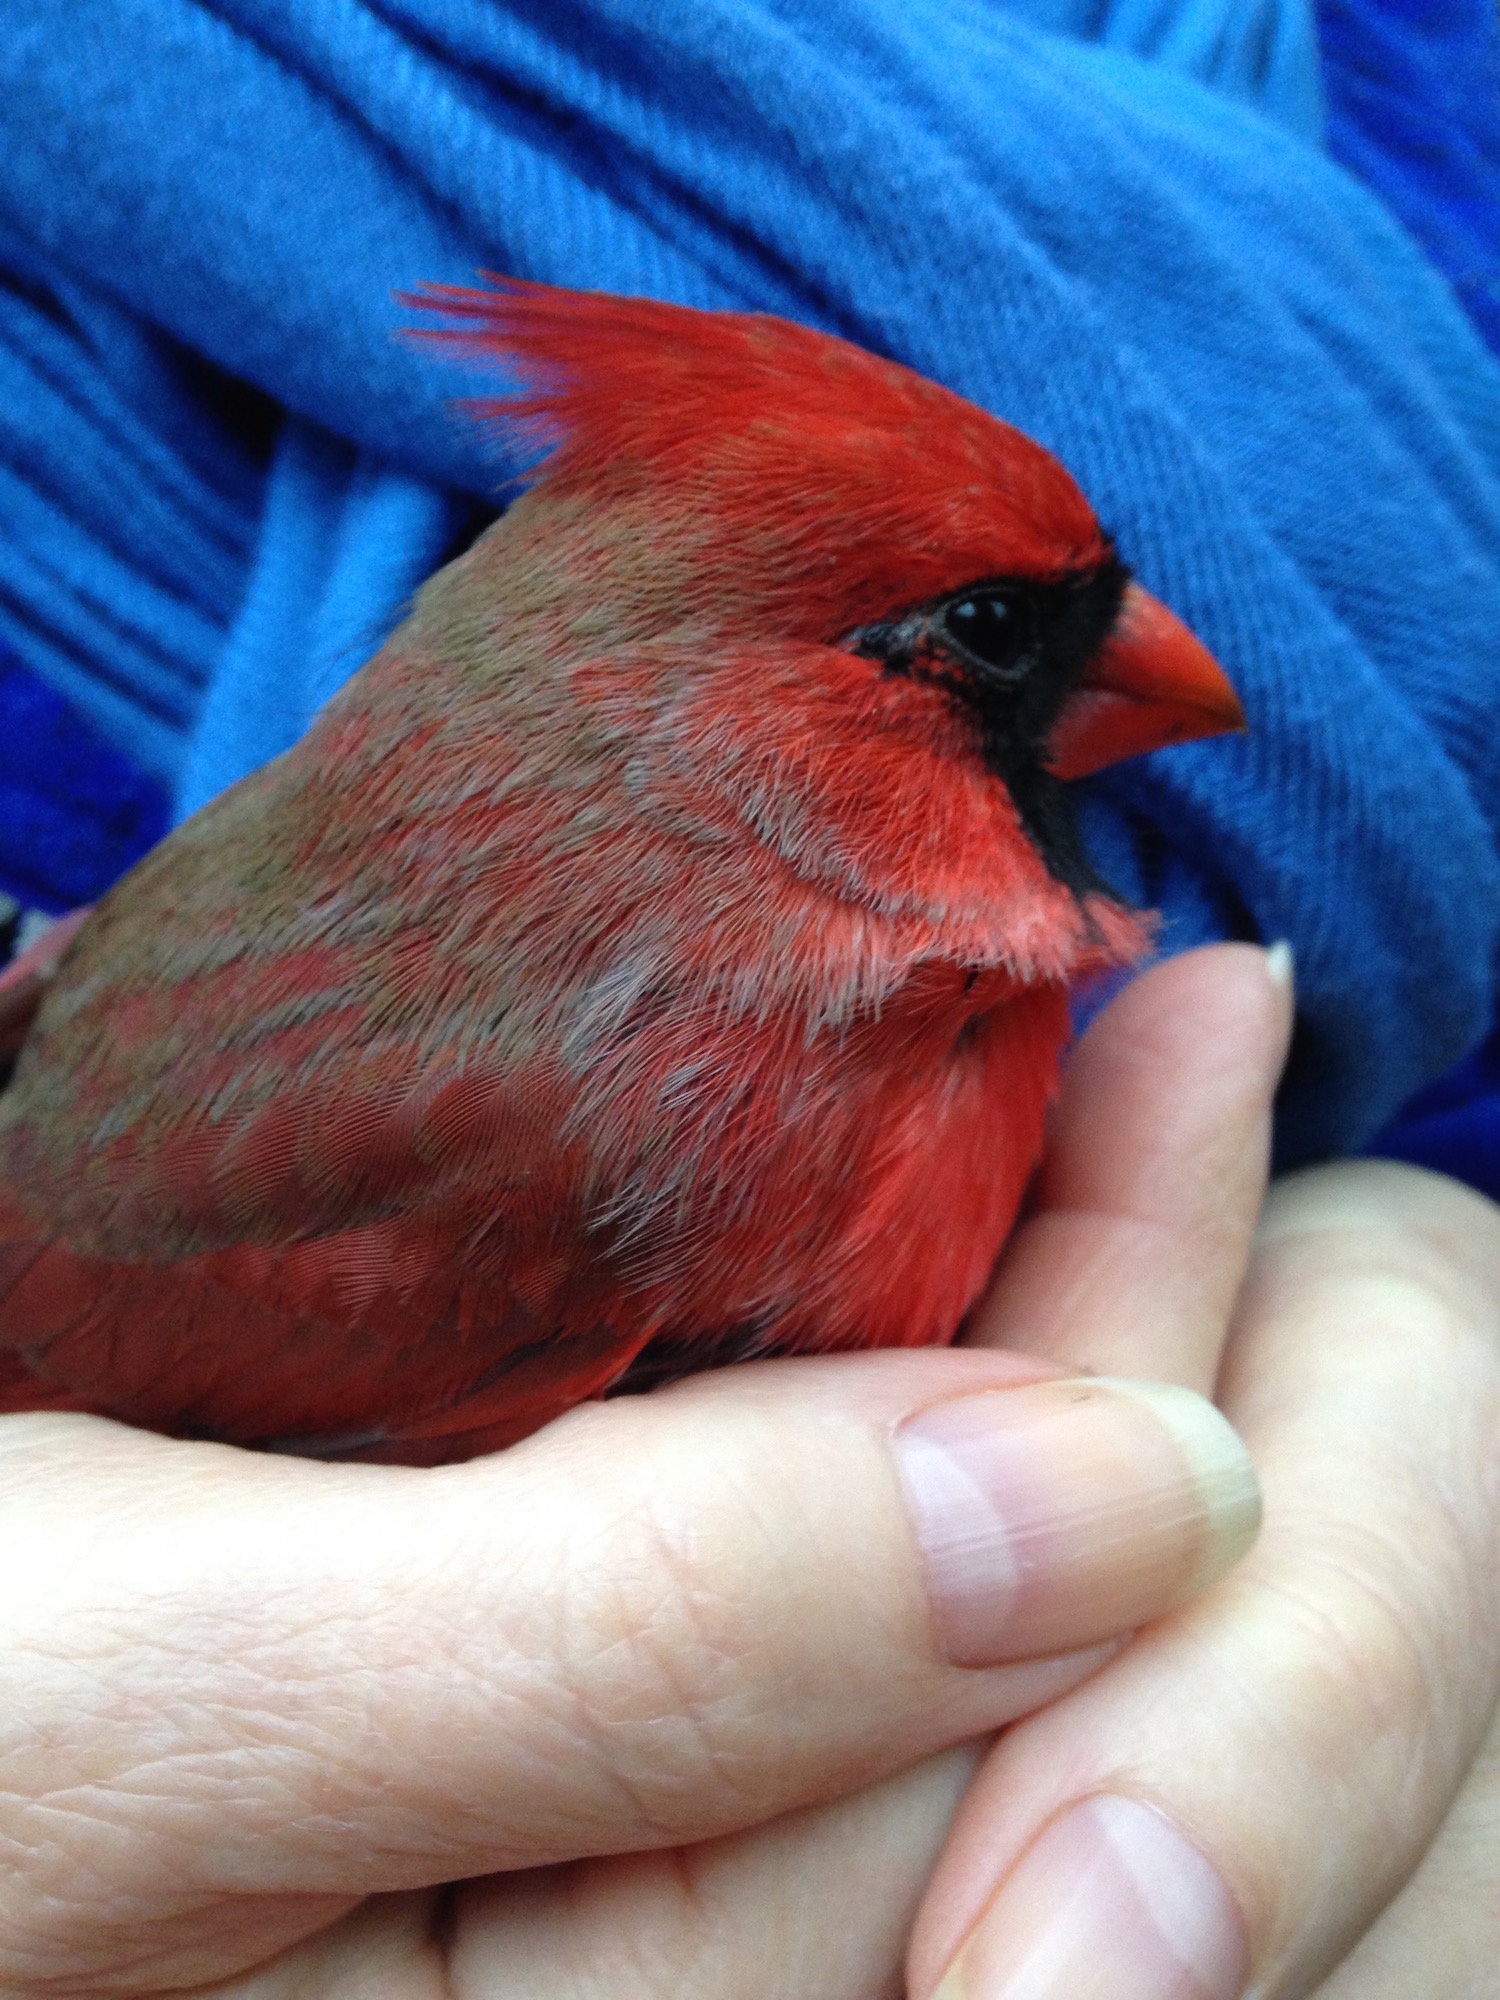 Beautiful Red Cardinal - Bird in Hand, recovers from being stunned after crashing into a window. Some say you shouldn't hold them. We believe that warm and loving hands helps. #BirdRepellents #BirdsHittingWindows #CardinalRescue #BirdRescues #BirdWindowStrikes